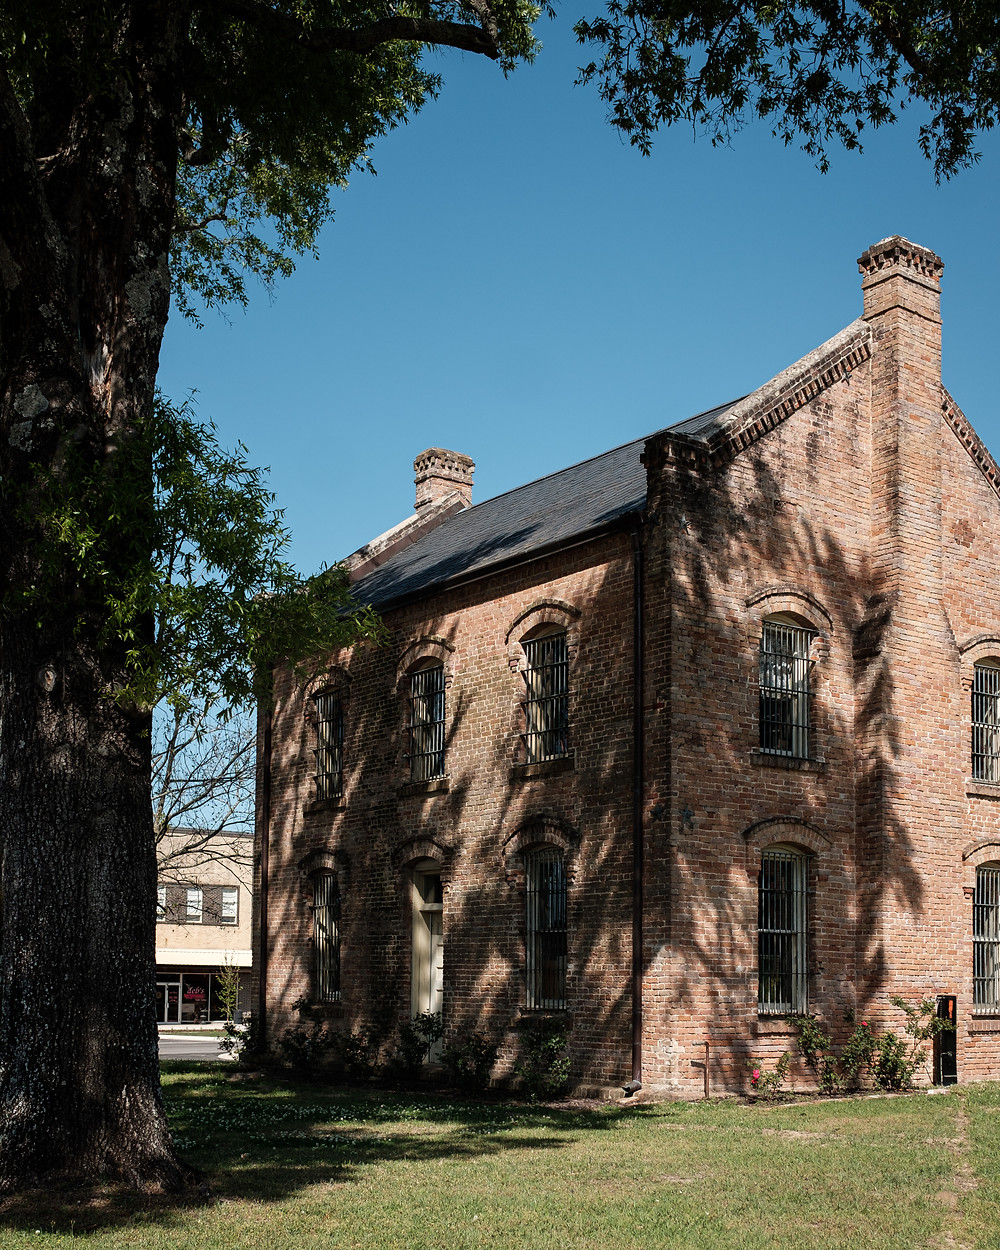 Historic Shelby County Jail in Center Texas. Brick building by trees.